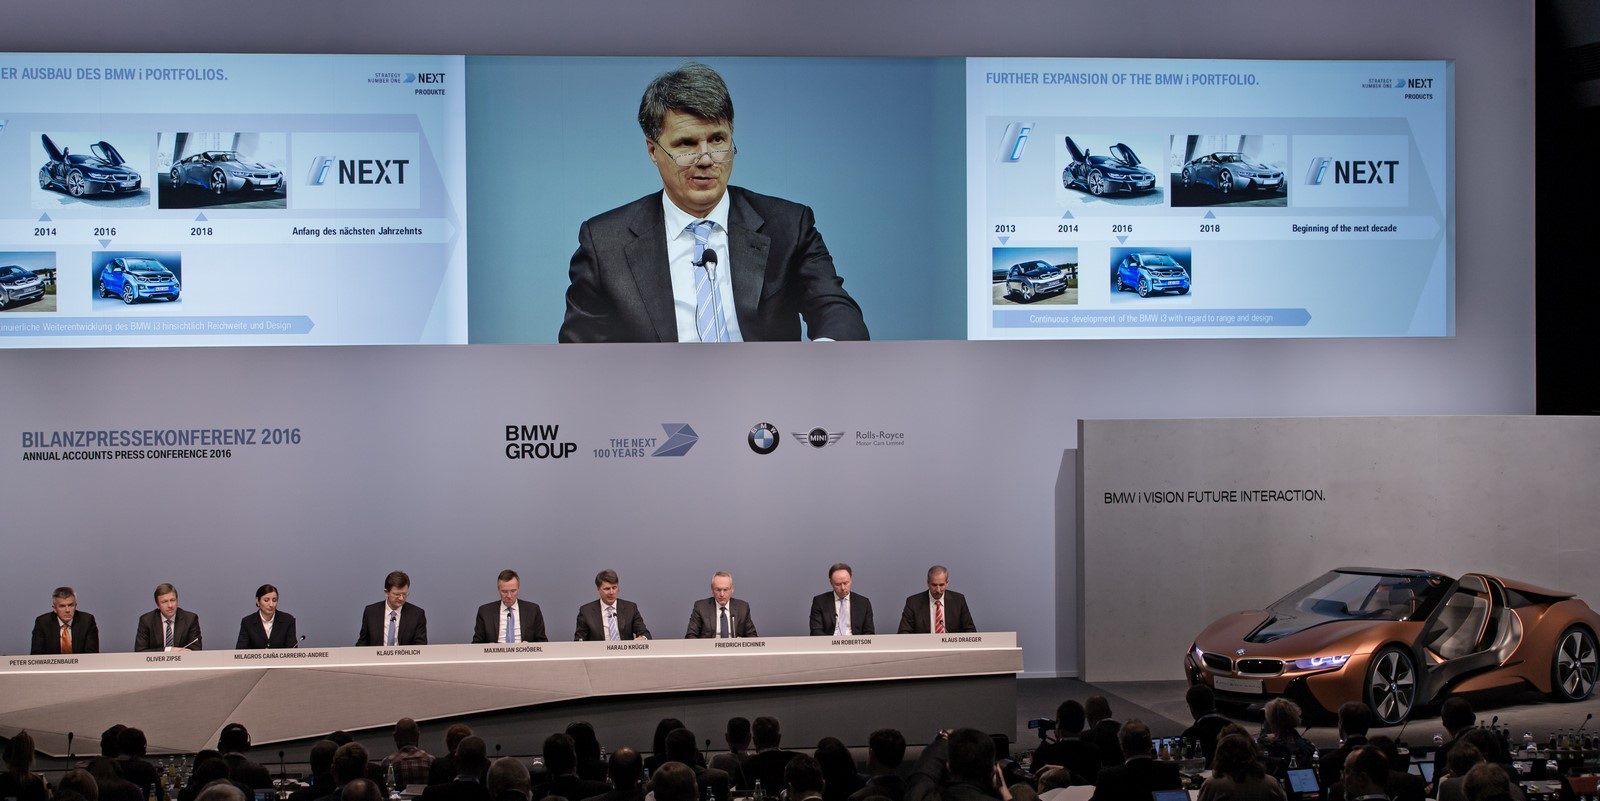 bmw operations strategy But bmw has been torn about whether to accelerate development of new electric cars, given its expensive early investments into the area which resulted in only lackluster sales of its i3.